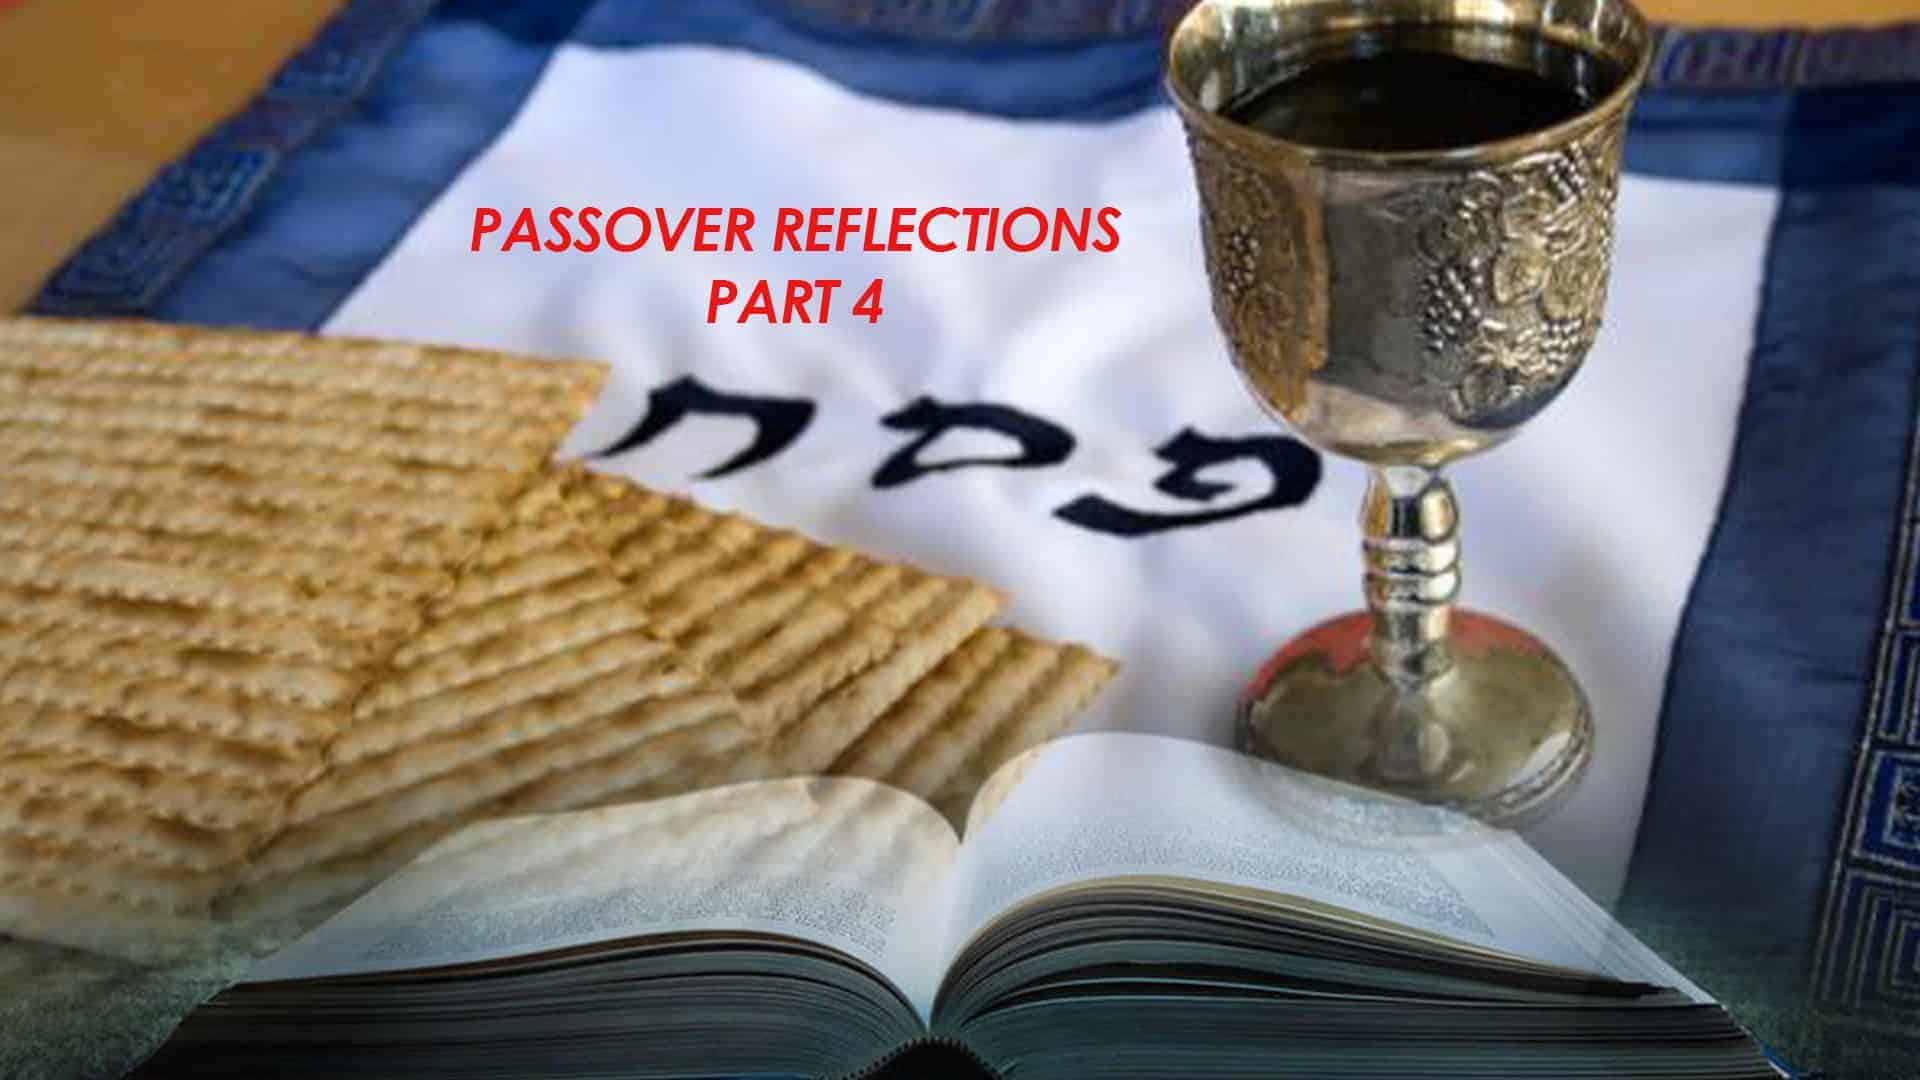 Passover Reflections Part 4